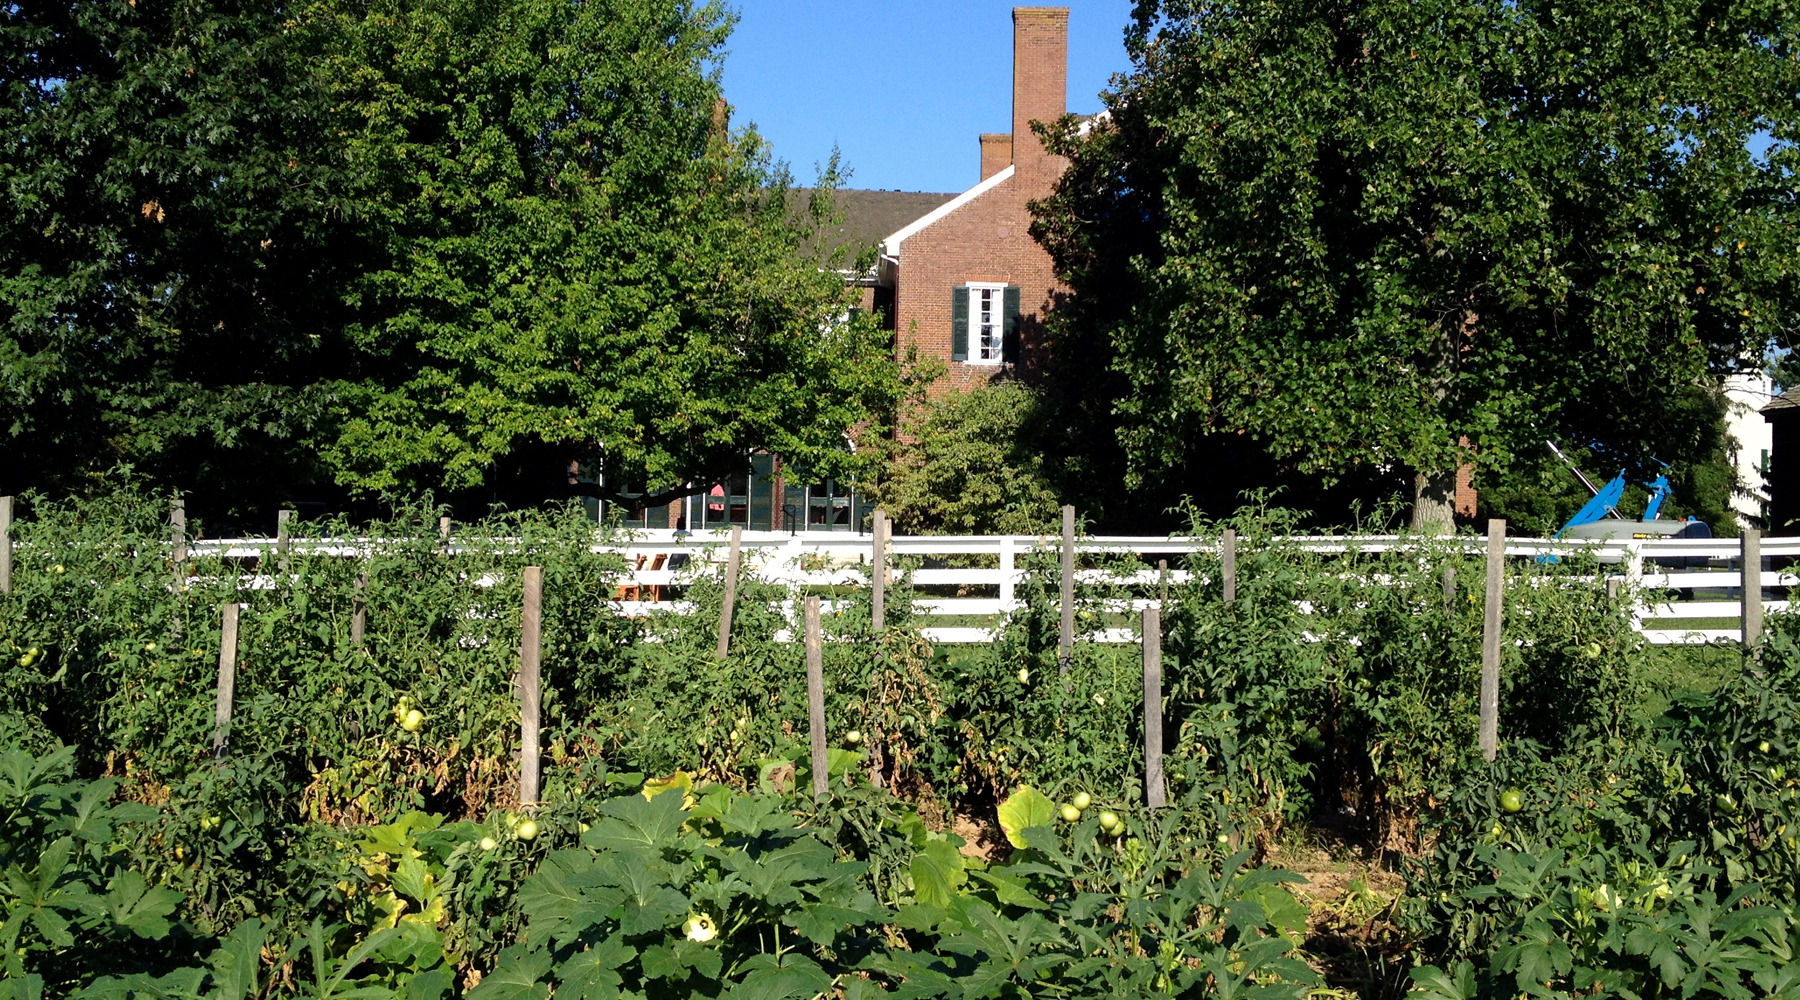 Peace, calm and good eats at Shaker Village